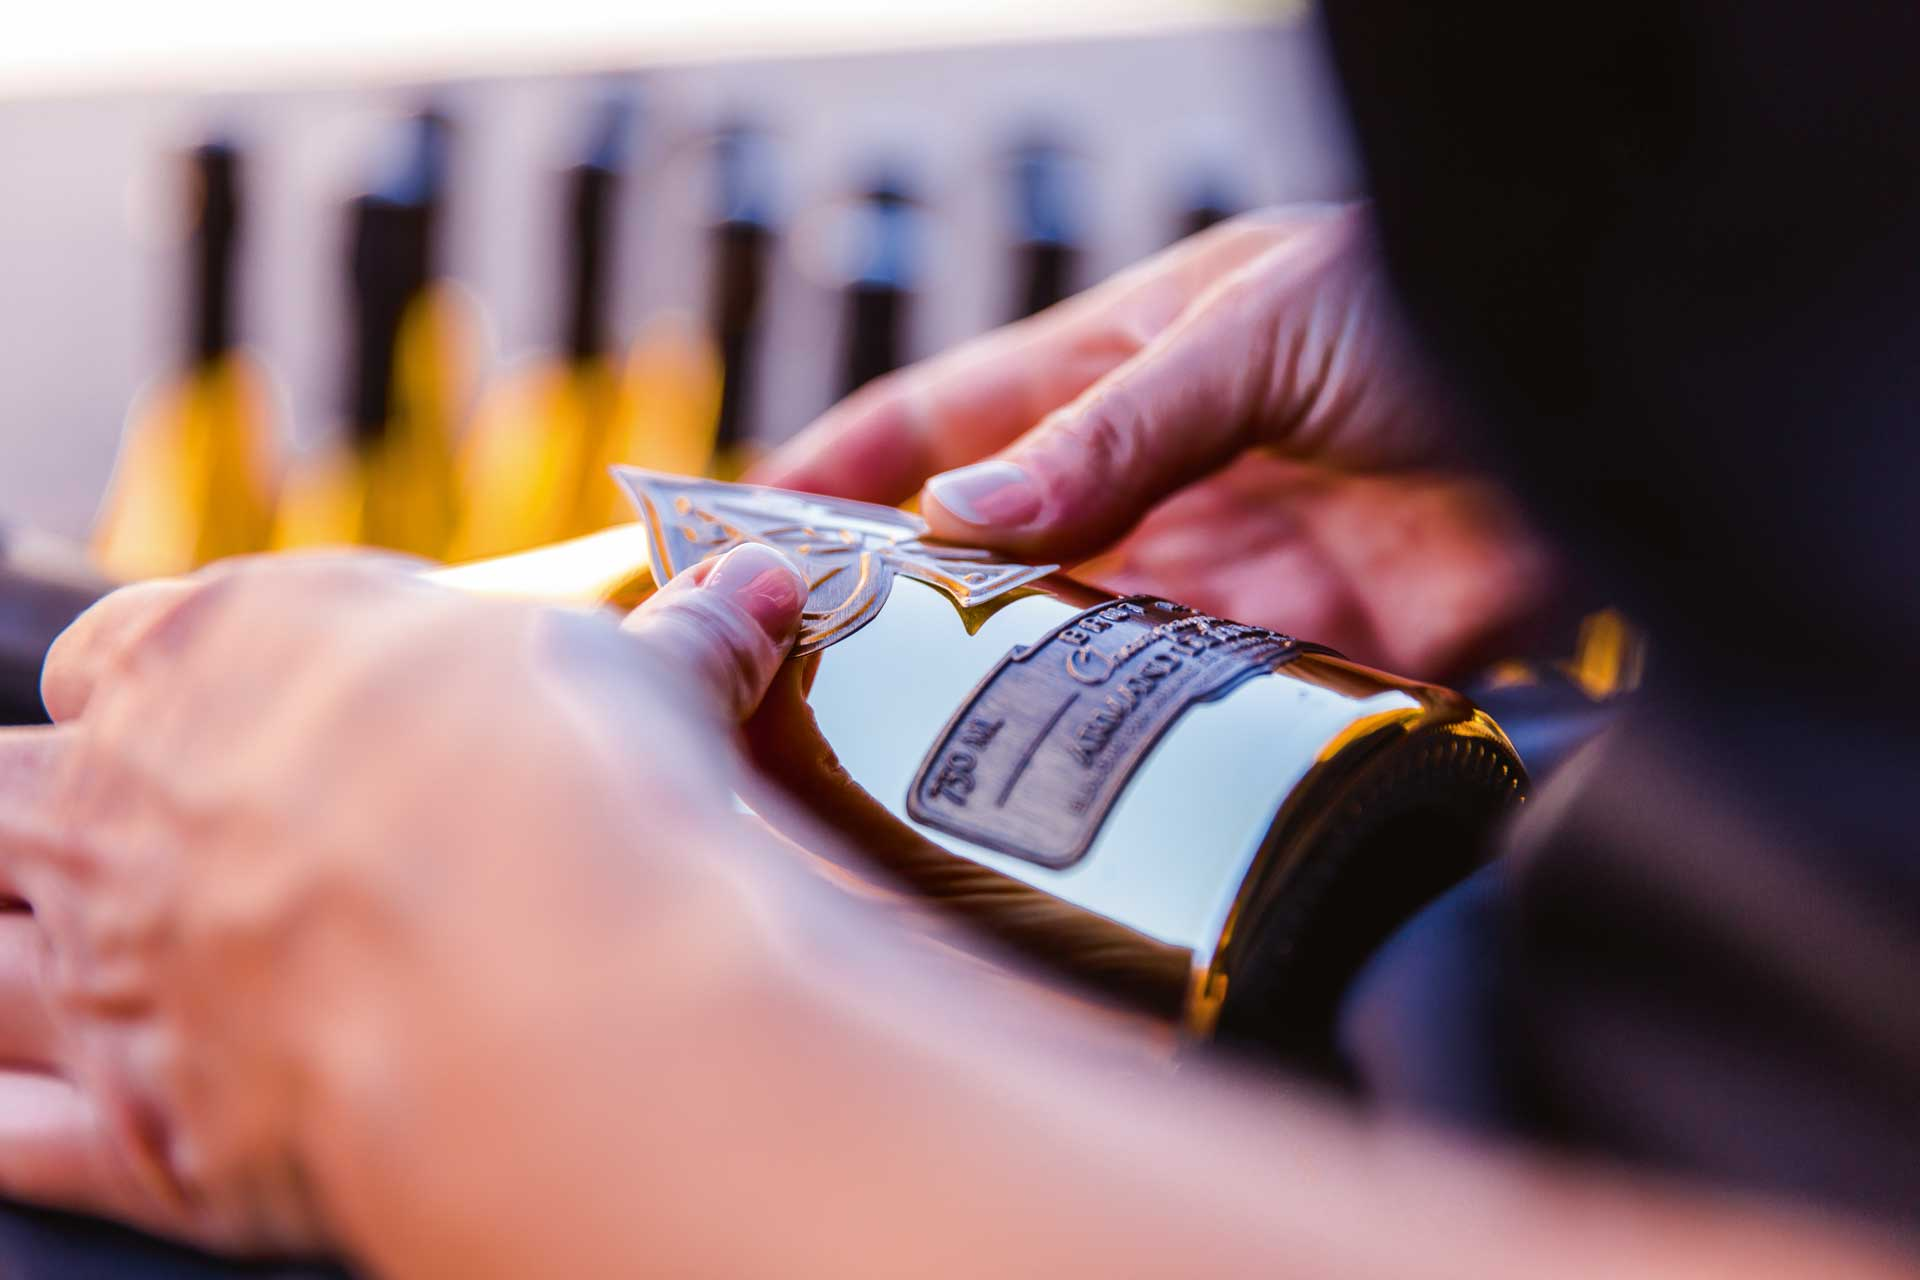 Each bottle of Jay-Z's Armand de Brignac champagne is finished by hand